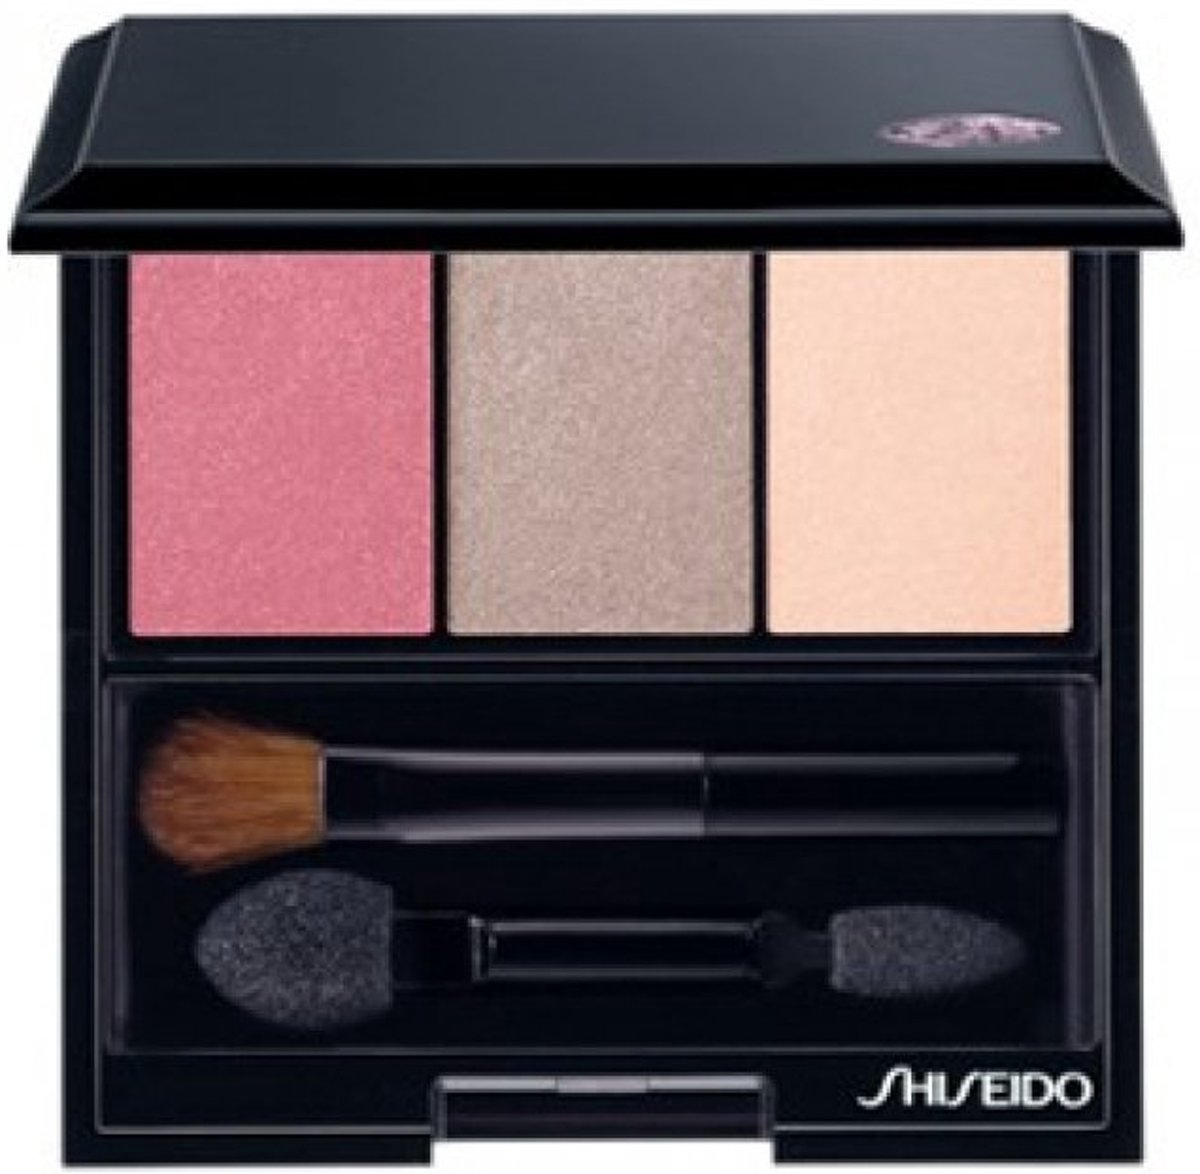 Shiseido Luminizing Satin Eye Color Trio - RD711 - Pink Sands - Oogschaduw Palet